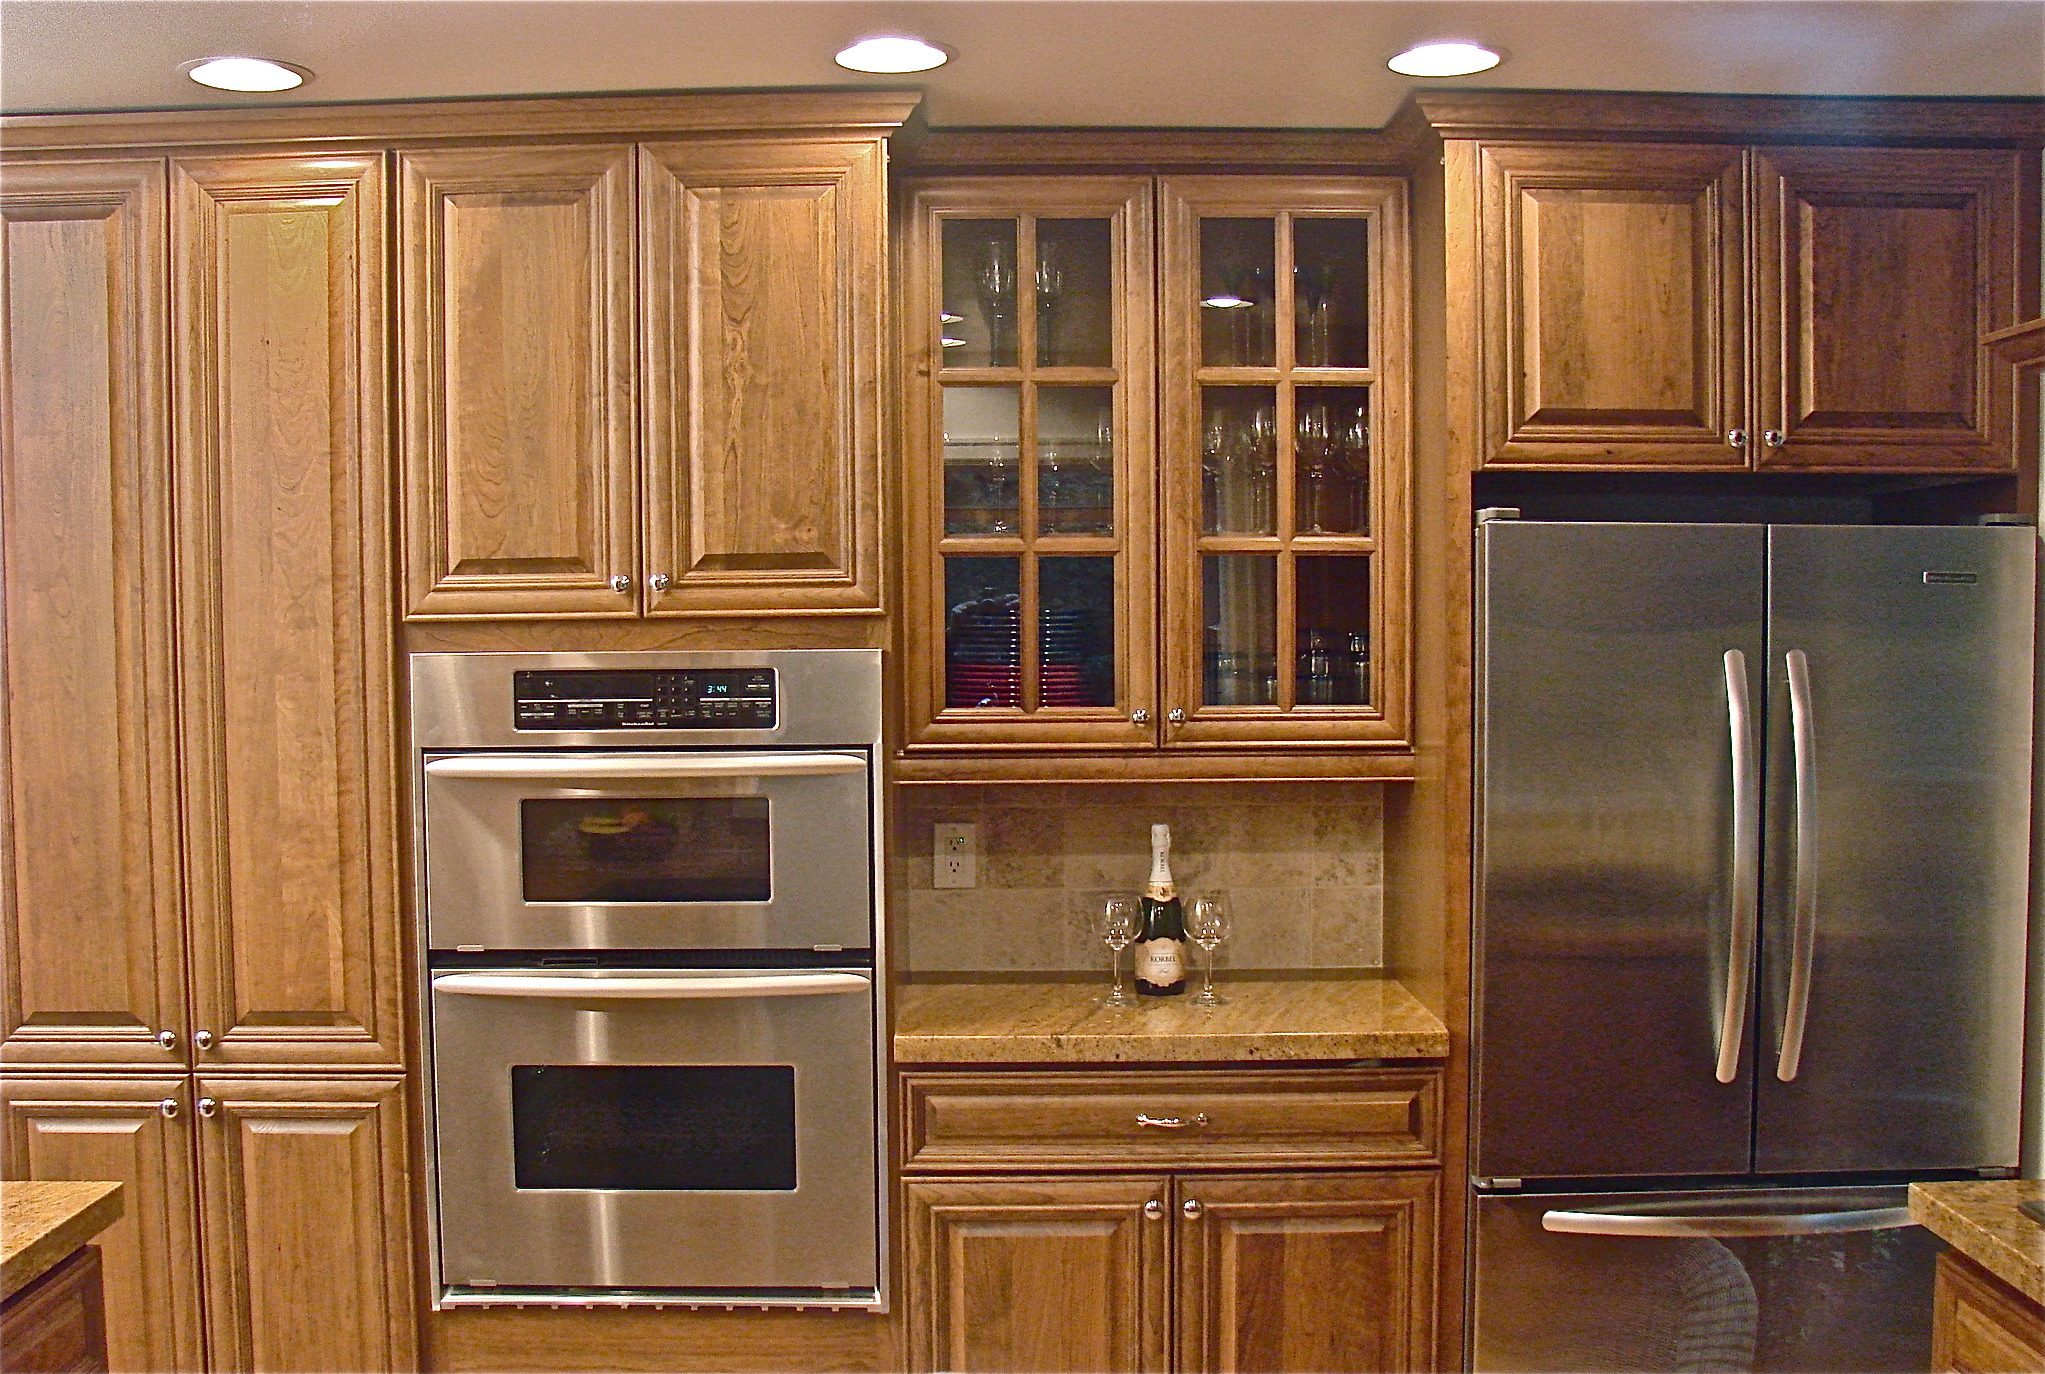 Kitchen Cabinet Stain Colors Home Depot Kitchen Cabinet Stain Kitchen  Cabinet Stain Colors Home Depot Photo ...